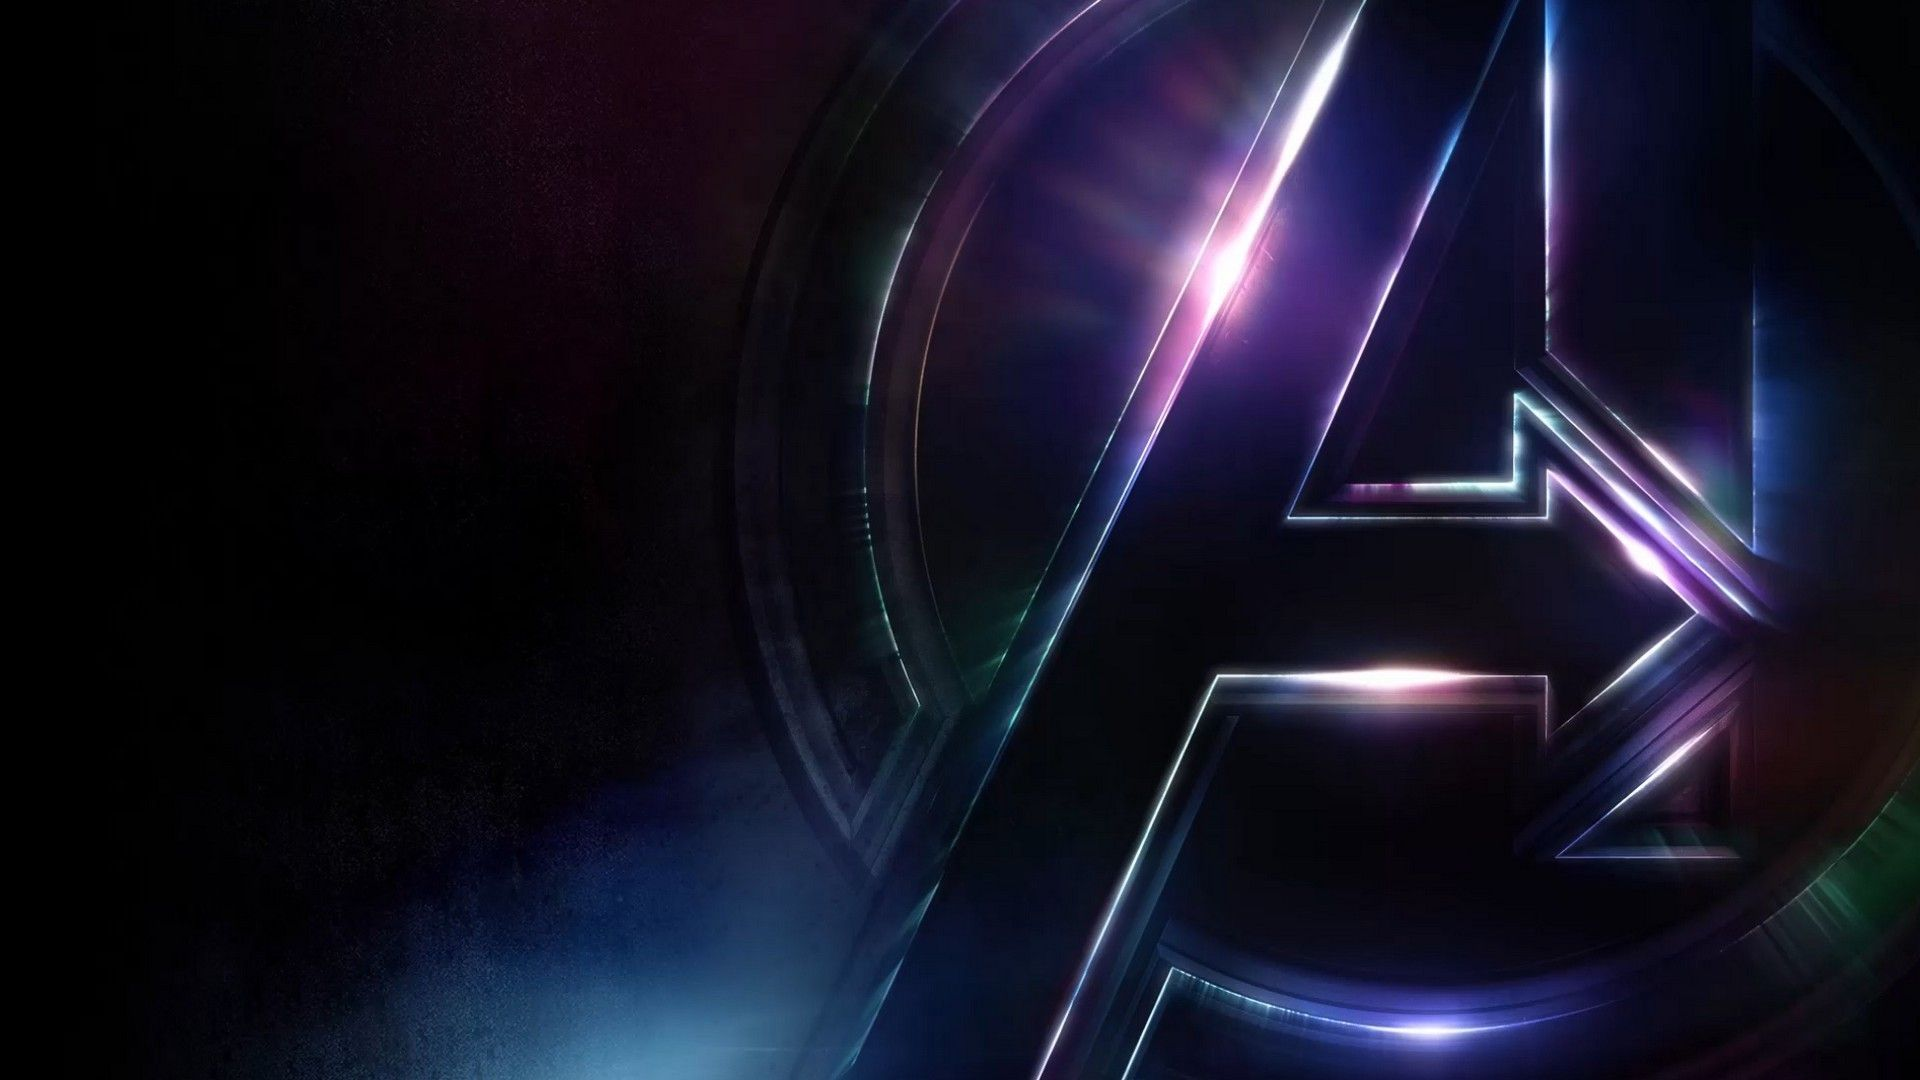 Avengers 3 Desktop Wallpaper Best Hd Wallpapers Hd Wallpapers For Pc Marvel Wallpaper Avengers Wallpaper